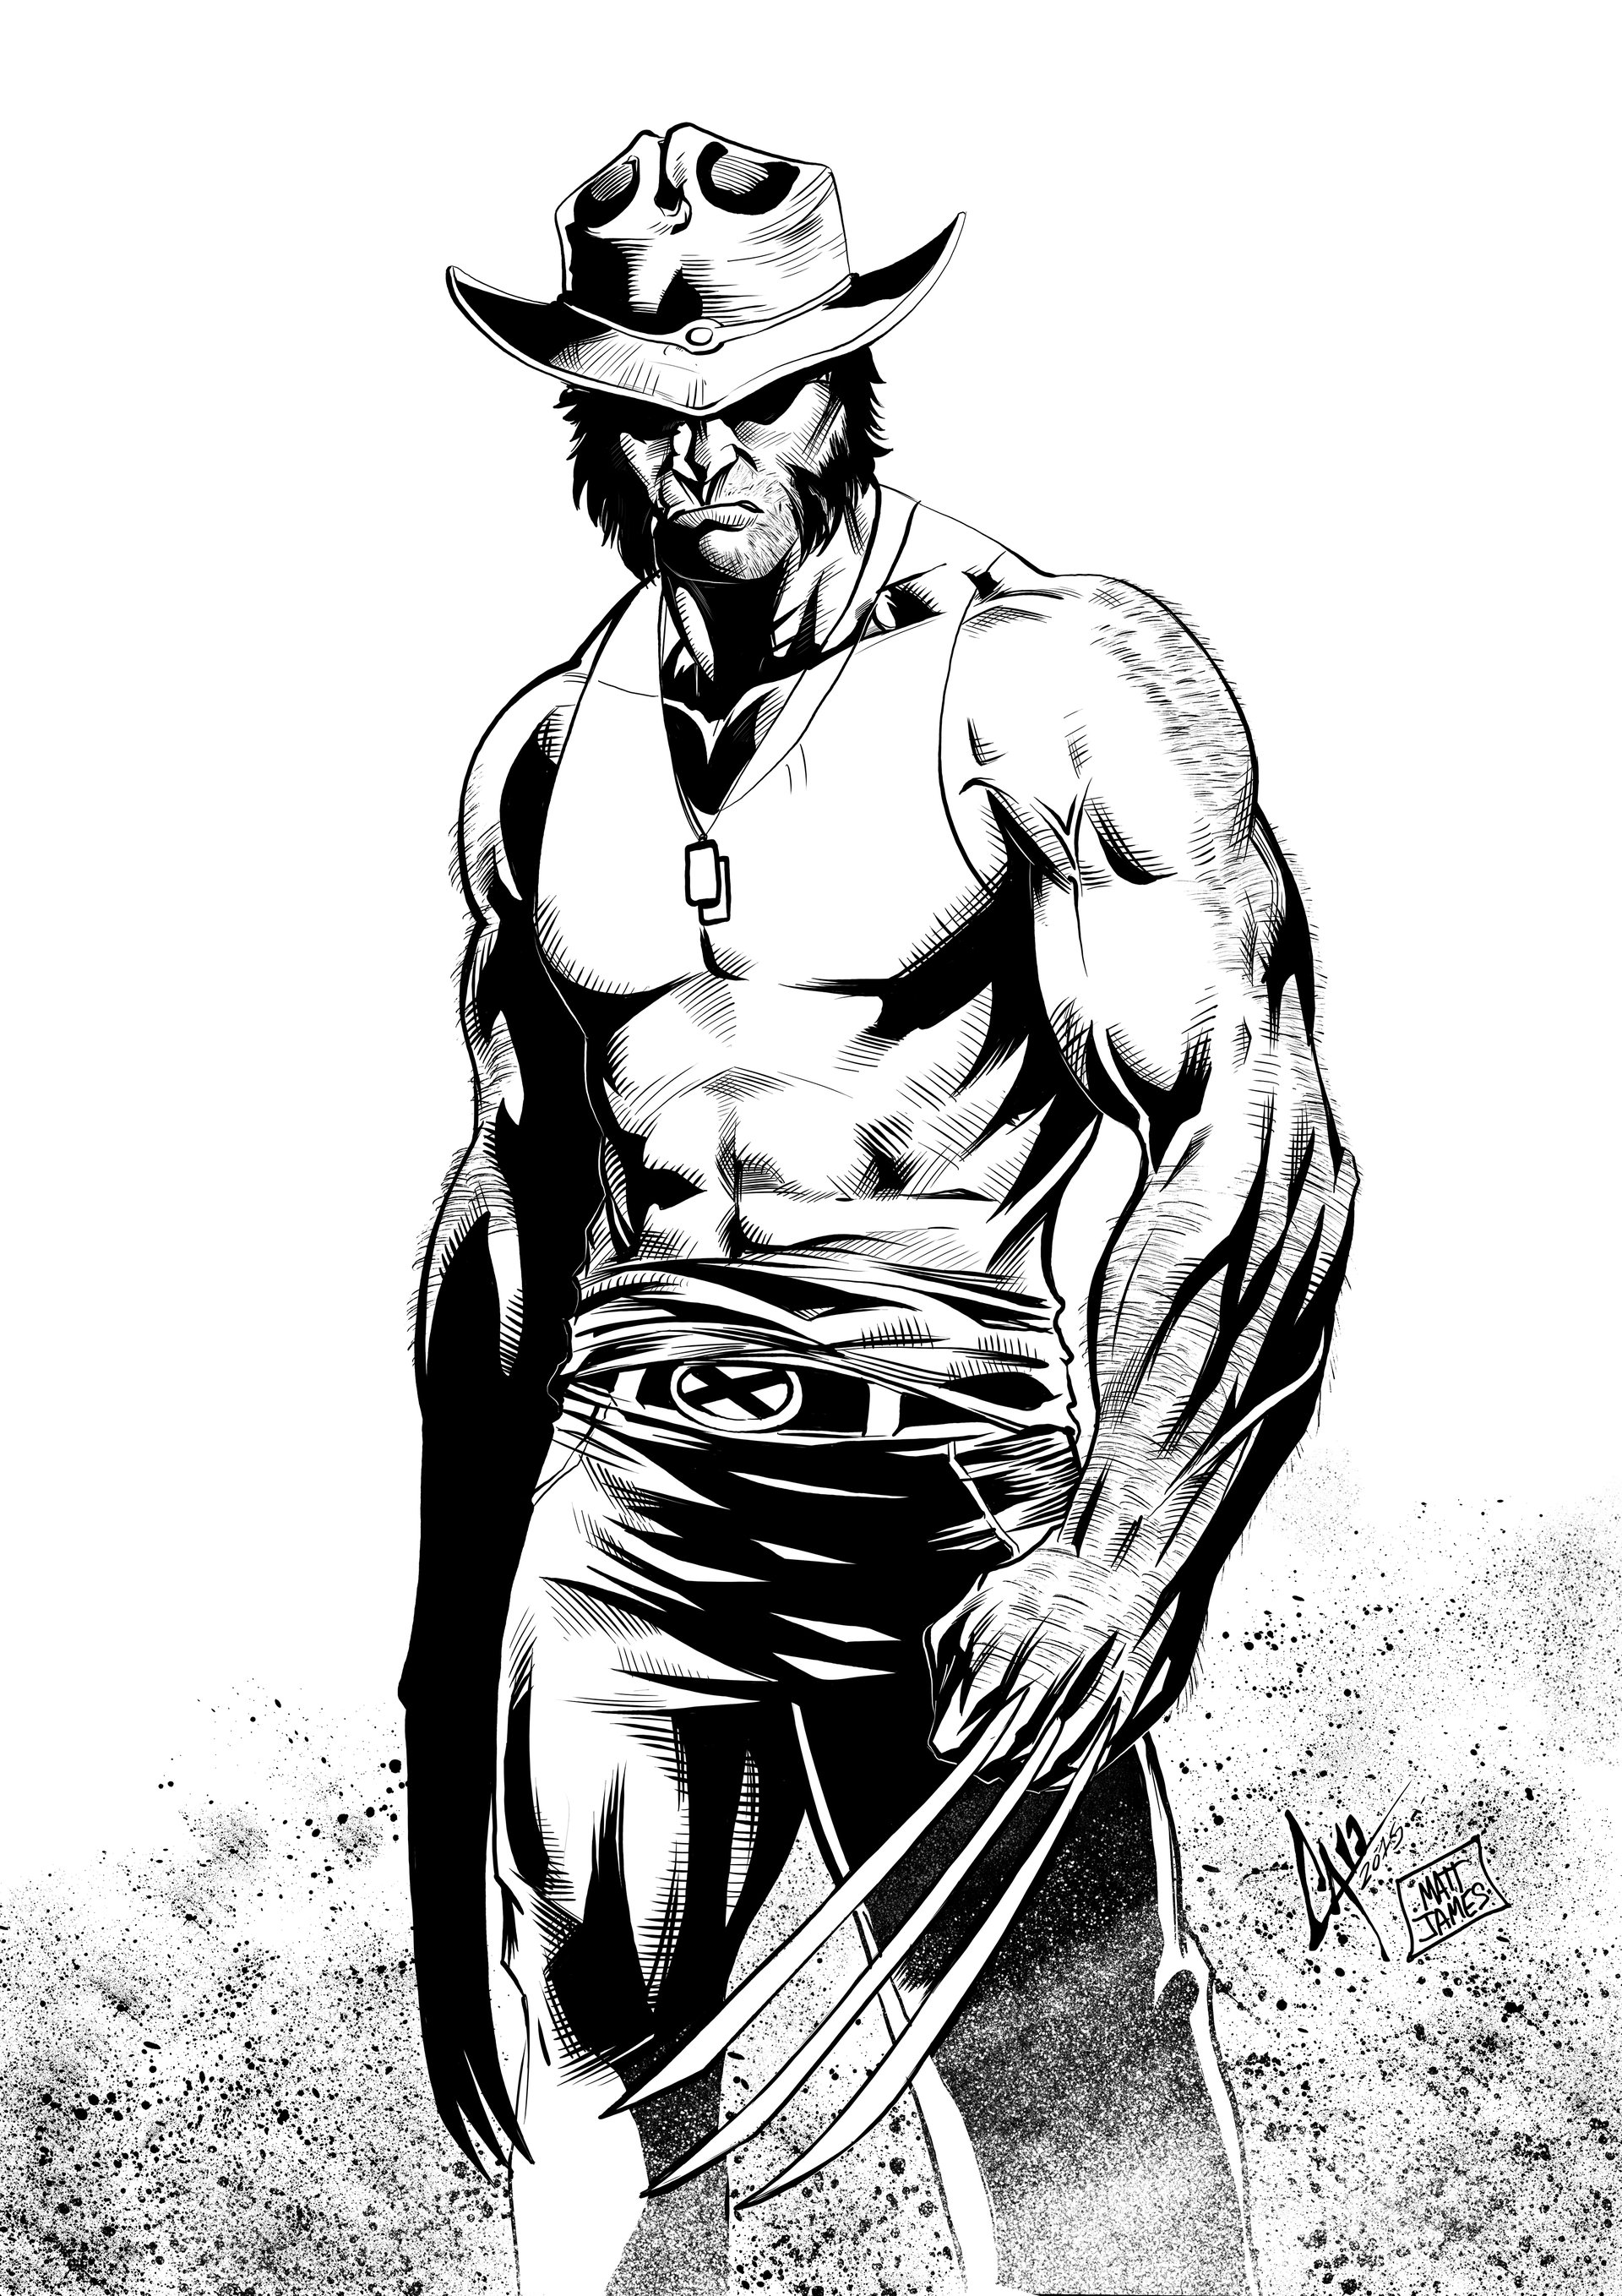 Matt james wolverine by caiomarcus art d8wv6h2